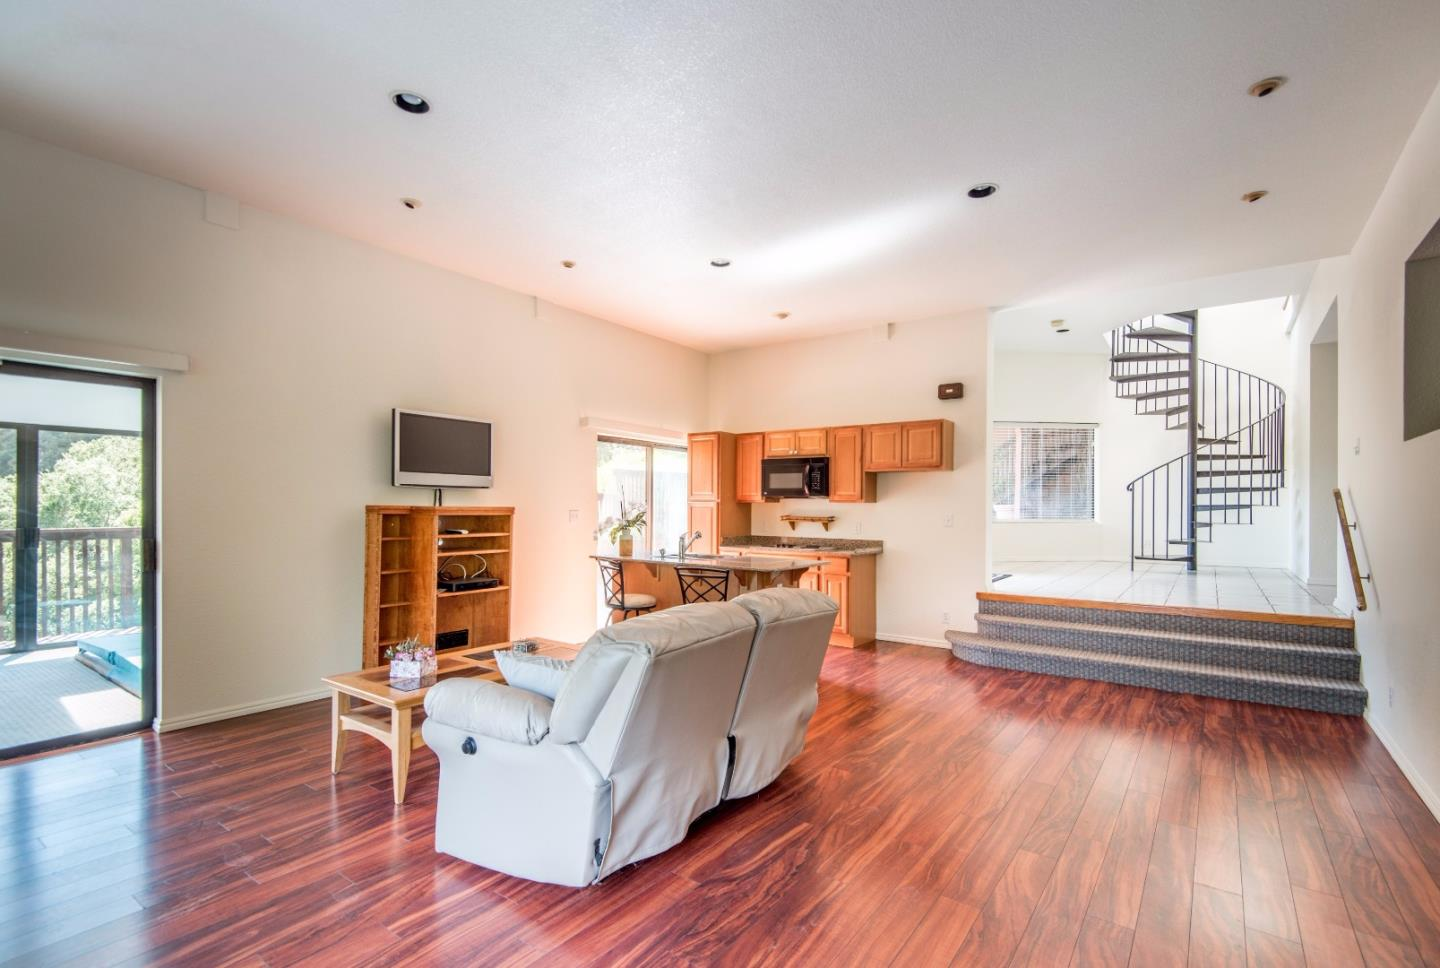 Additional photo for property listing at 16200 Old Japanese Road  Los Gatos, California 95033 United States